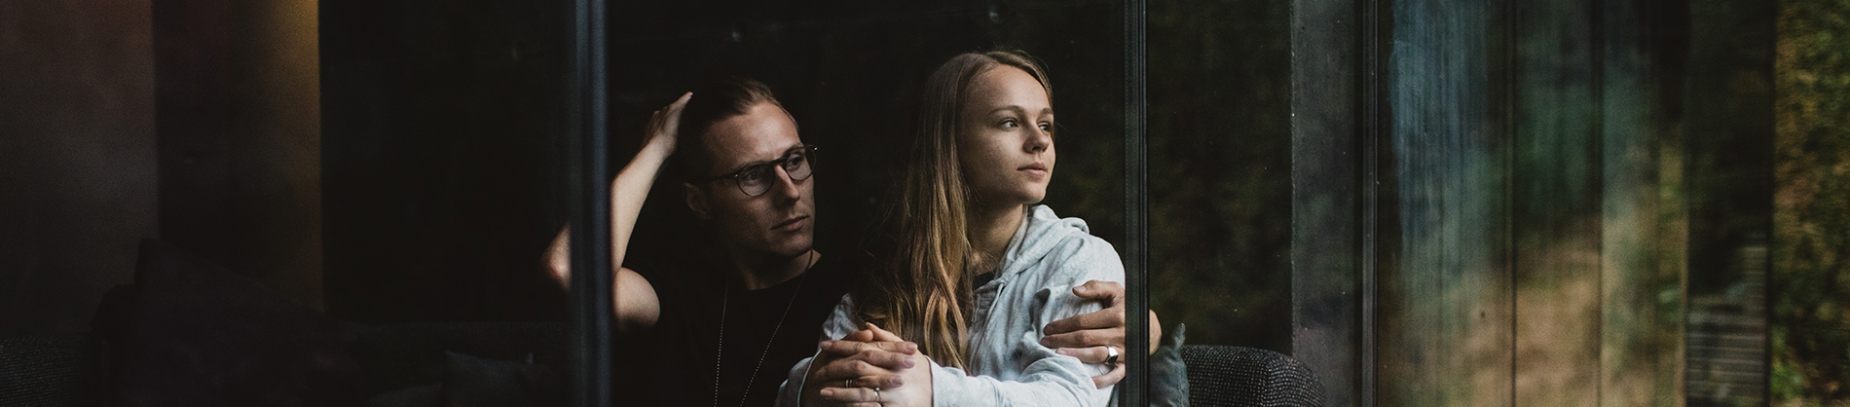 A couple sat looking out of a glass window